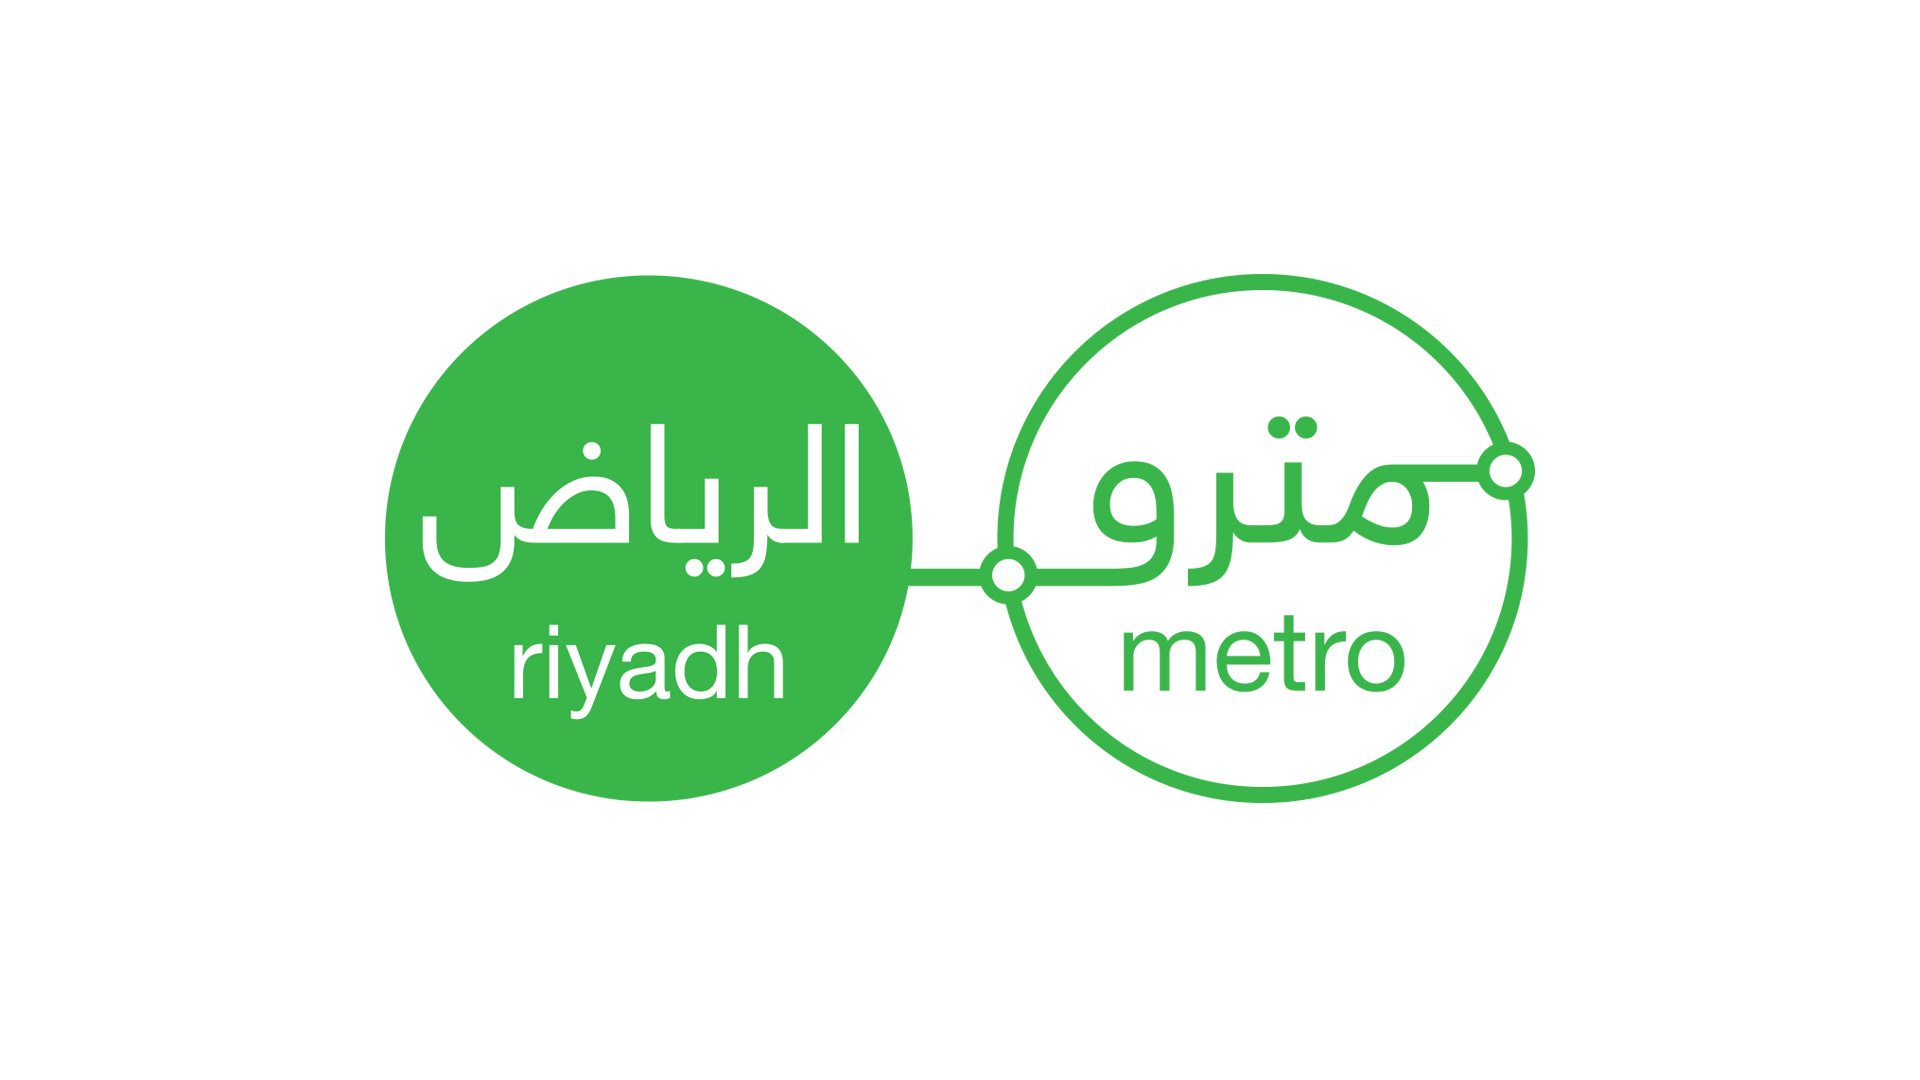 8RiyadhMetro_CommunicationIllustration7